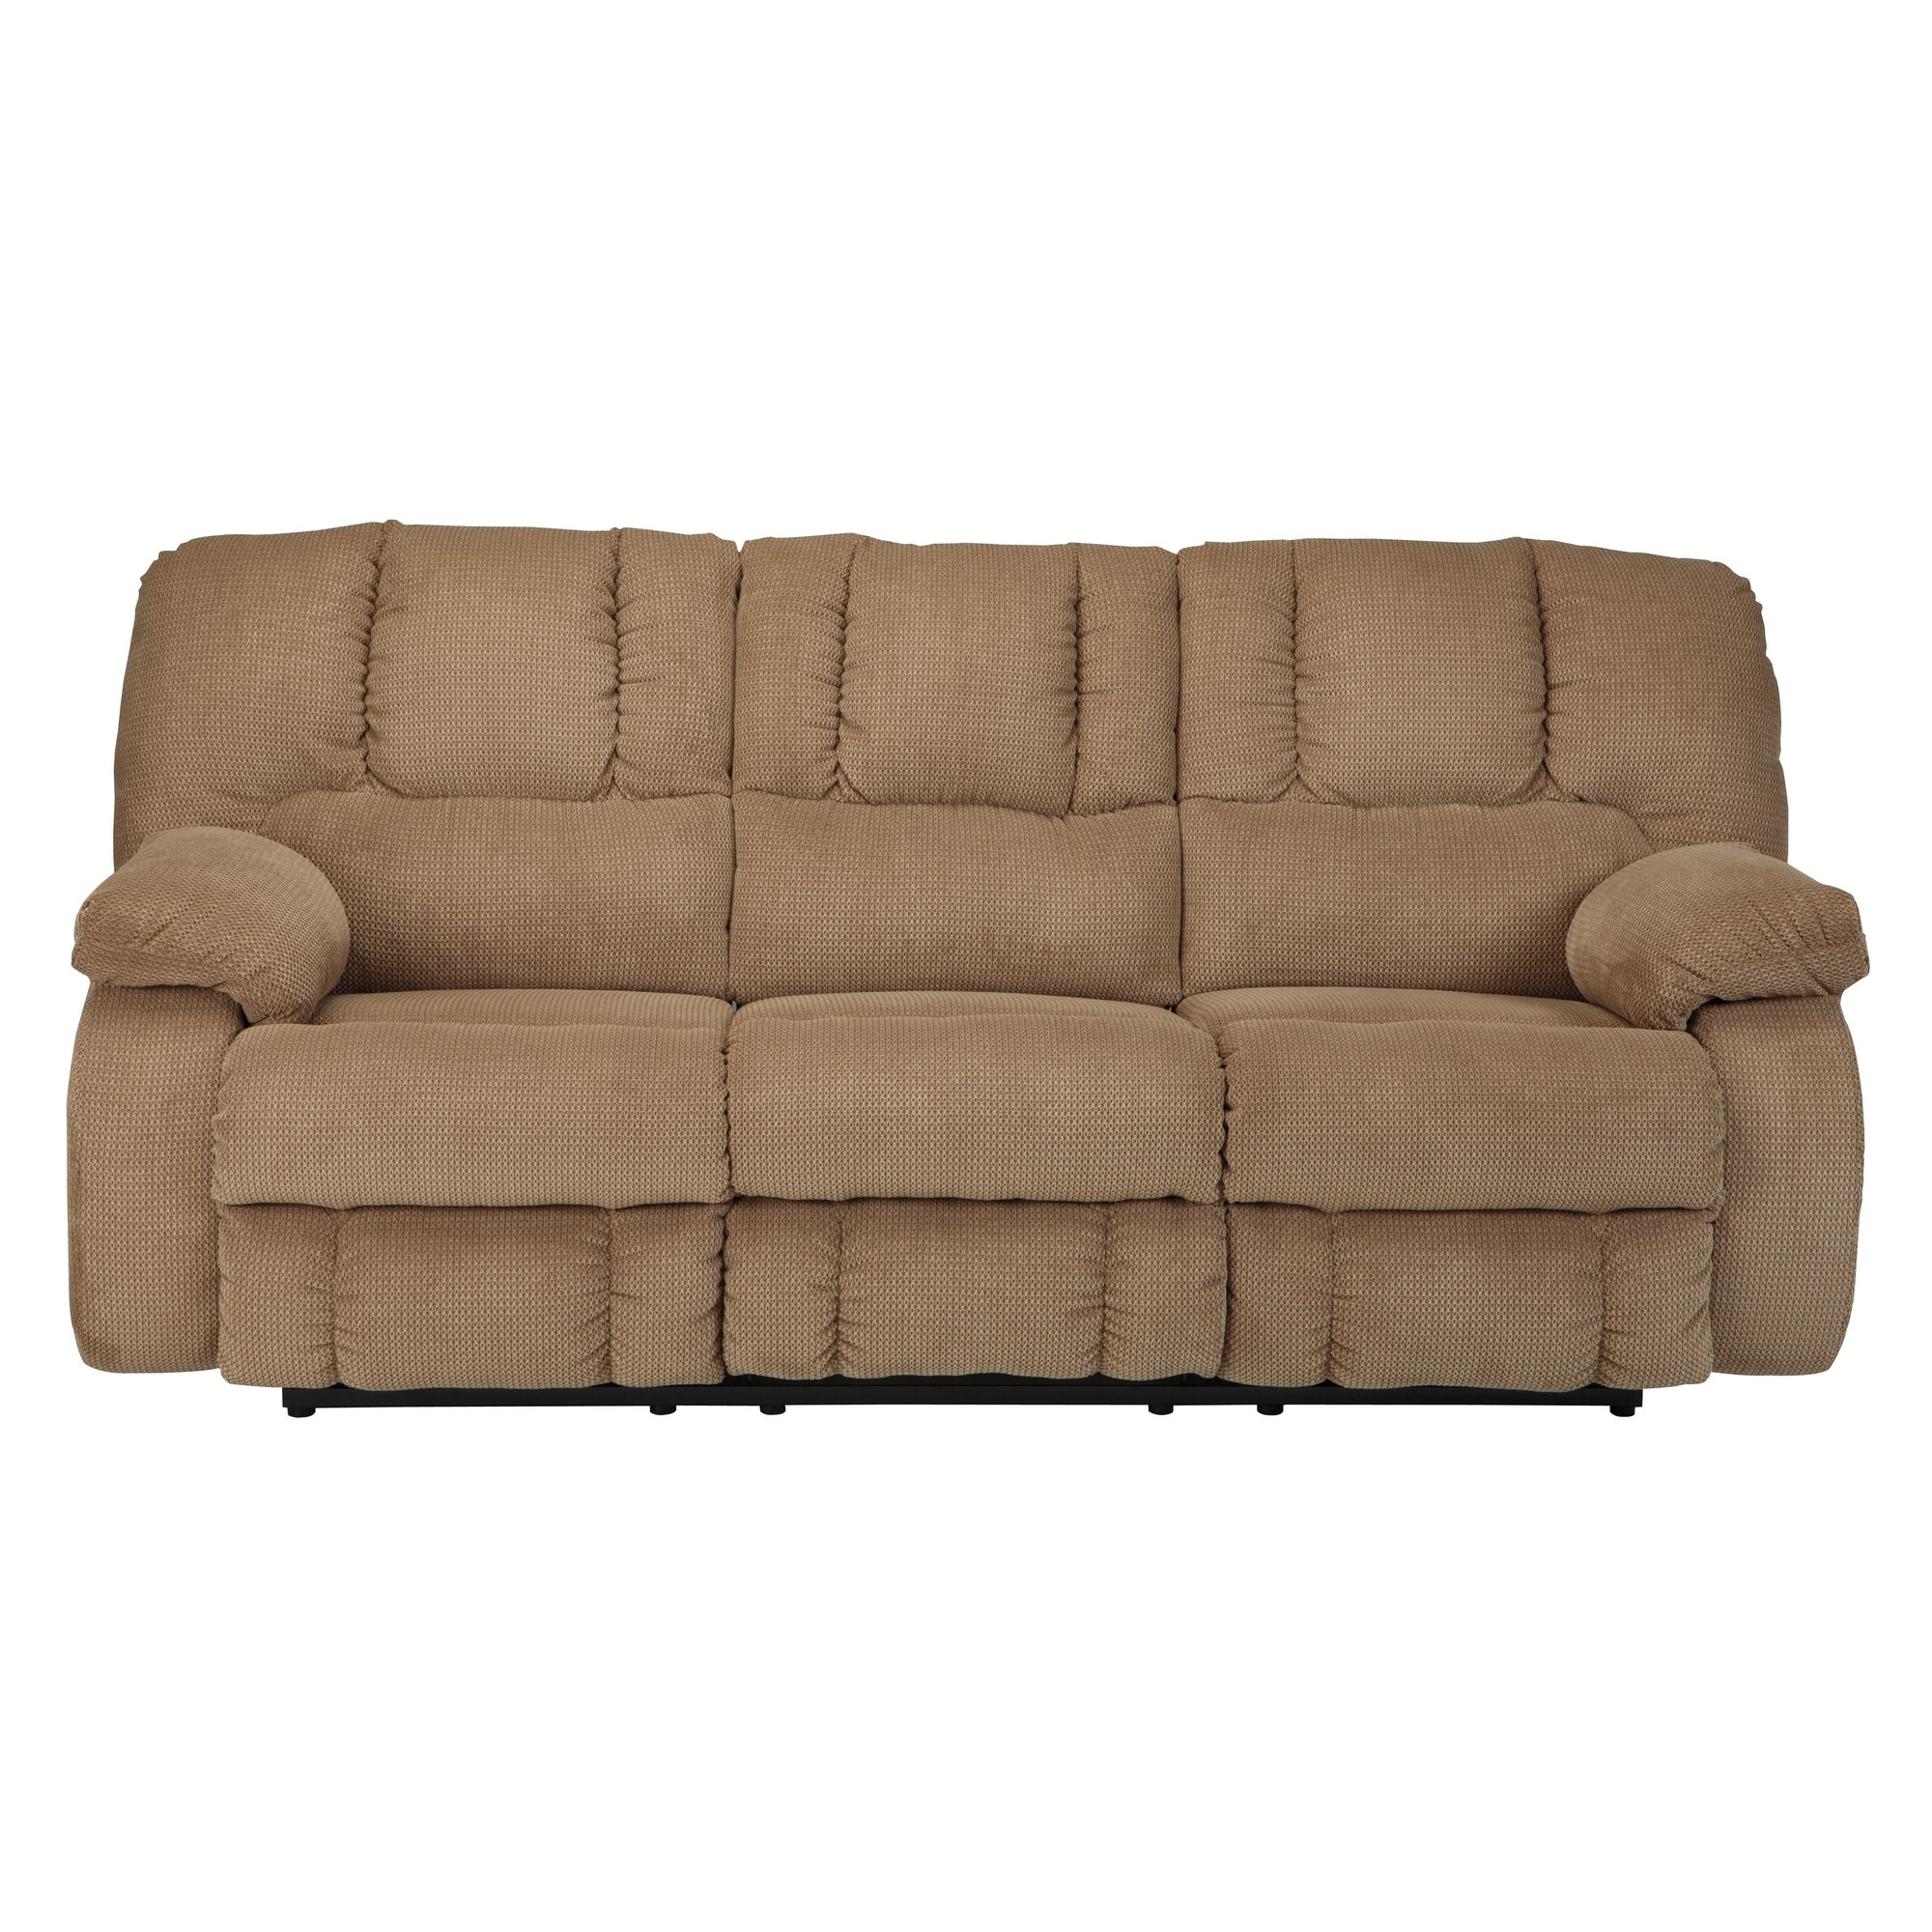 reclining sofa reviews 2017 cream color leather set 12 best collection of ashley tufted